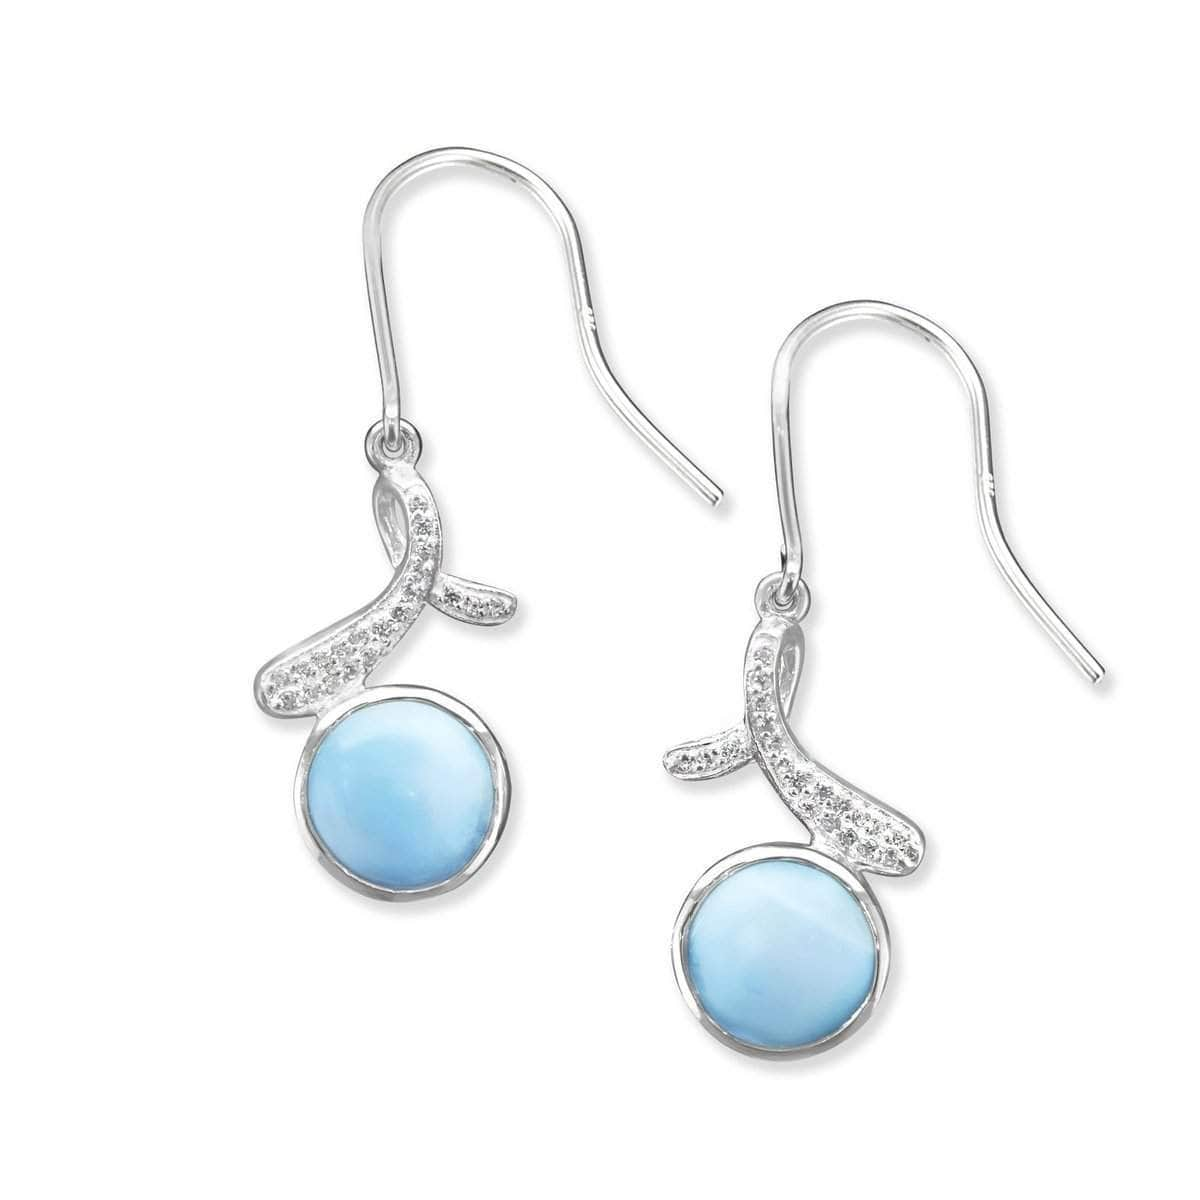 Ellie White Sapphire Earrings - Eelli00-00-Marahlago Larimar-Renee Taylor Gallery